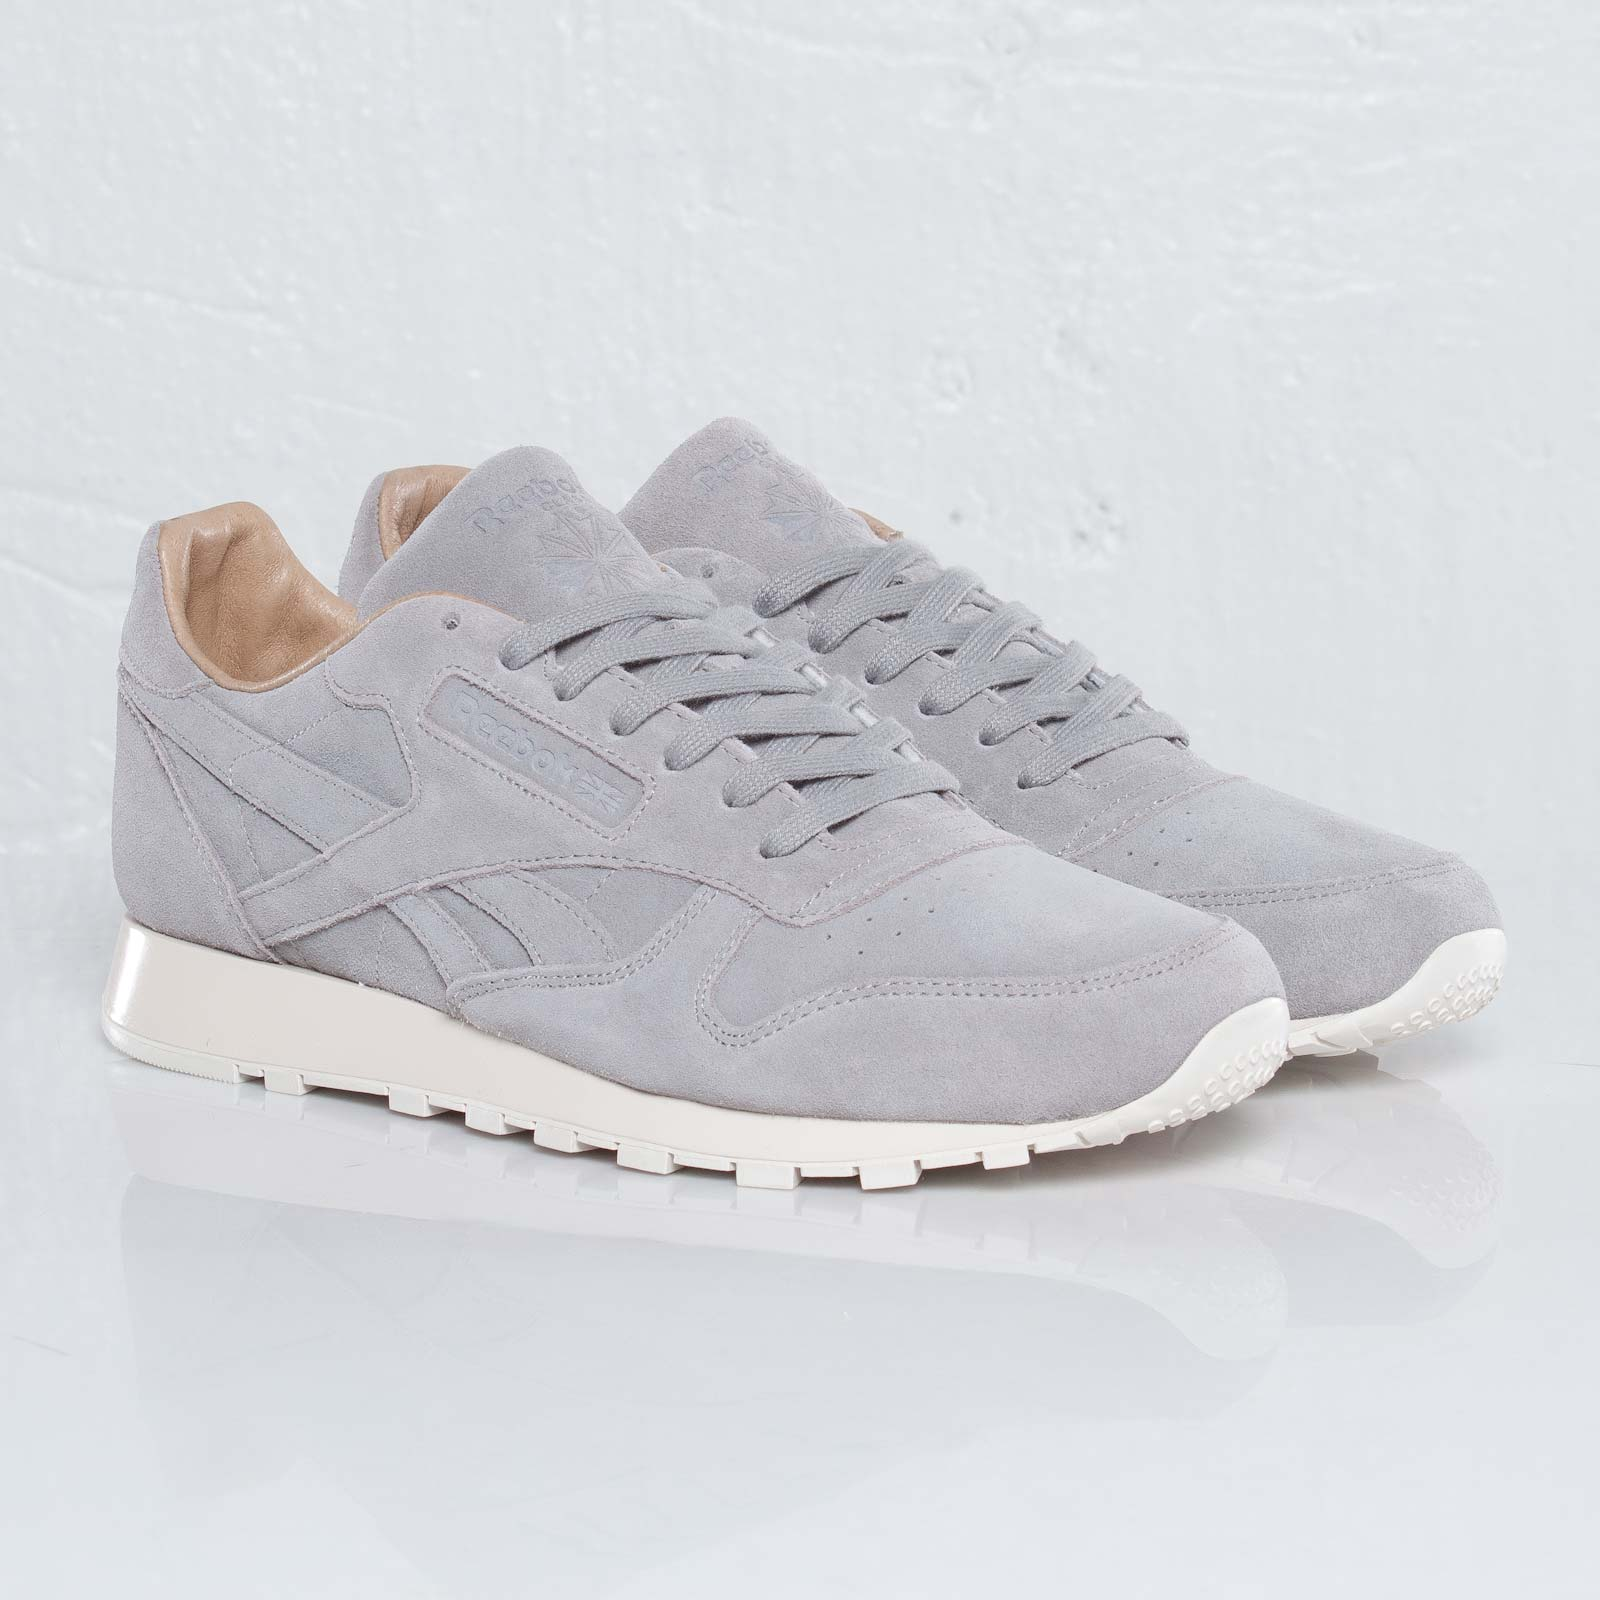 info for 85147 d084f Reebok Classic Leather Lux - 110096 - Sneakersnstuff ...